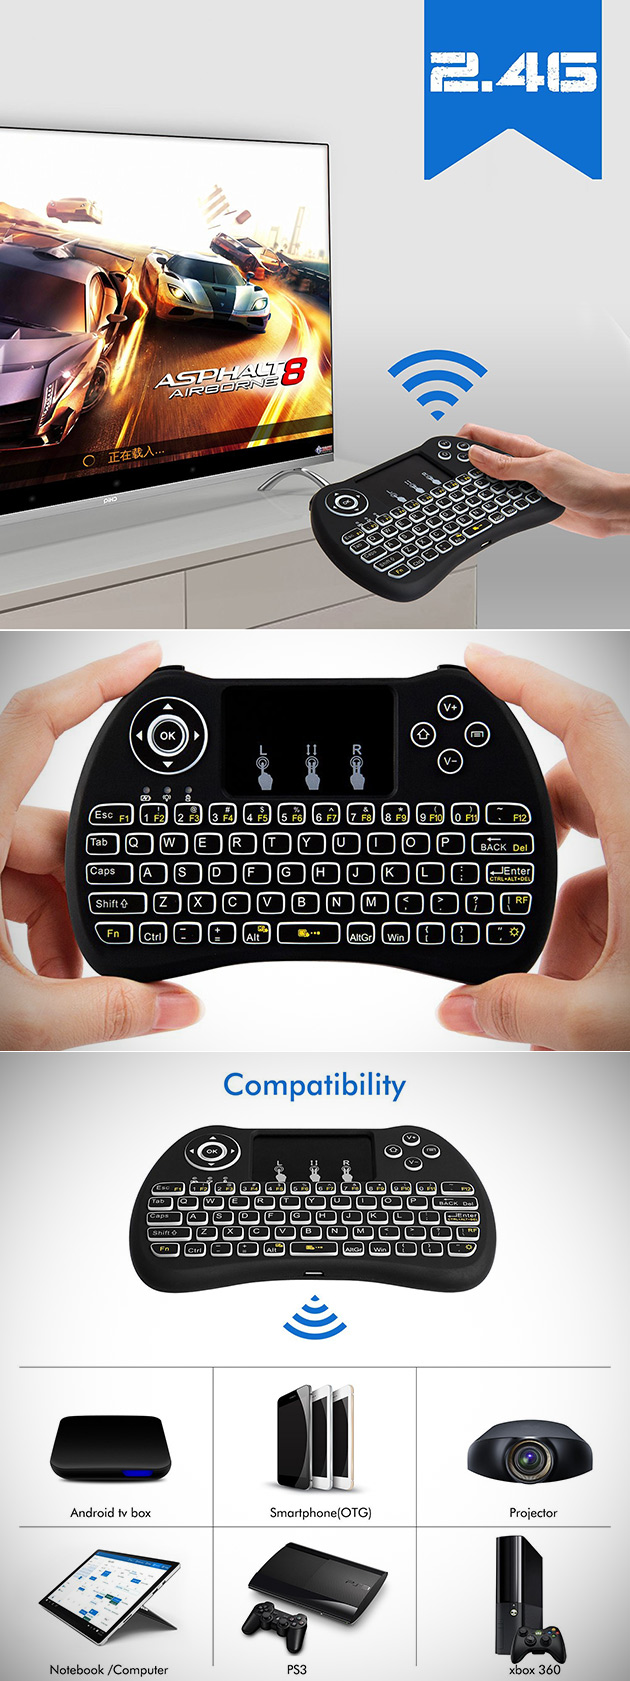 Lynec H9 Touchpad Keyboard